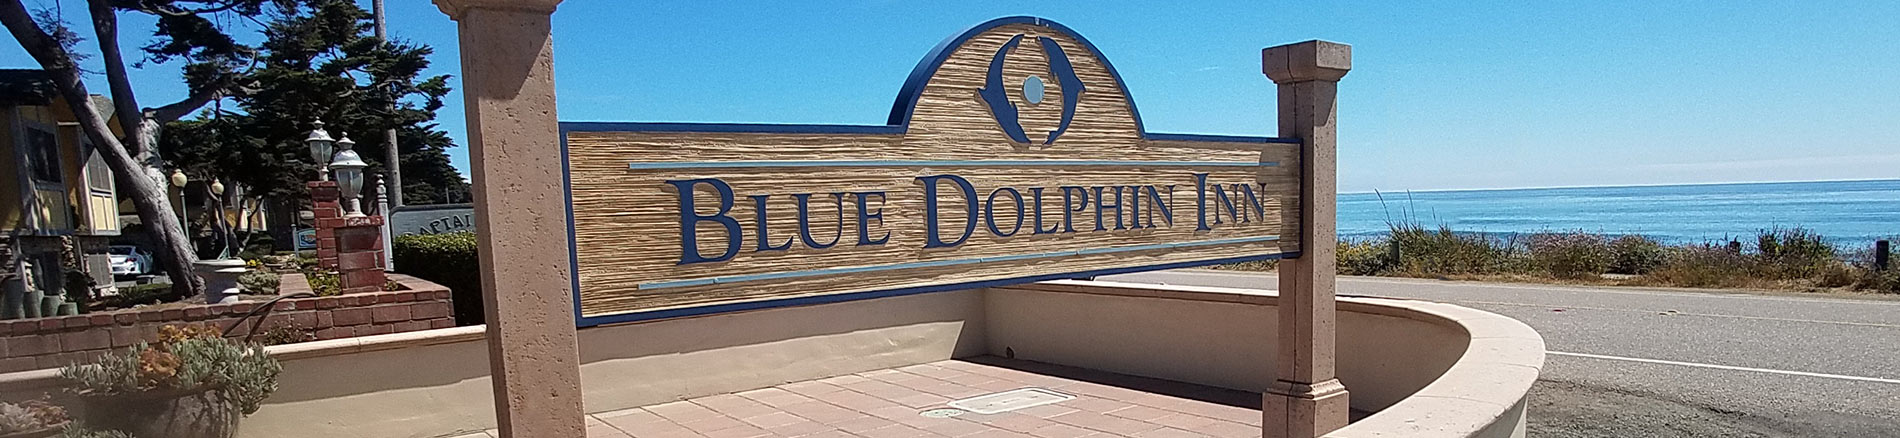 Blue Dolphin Inn sign